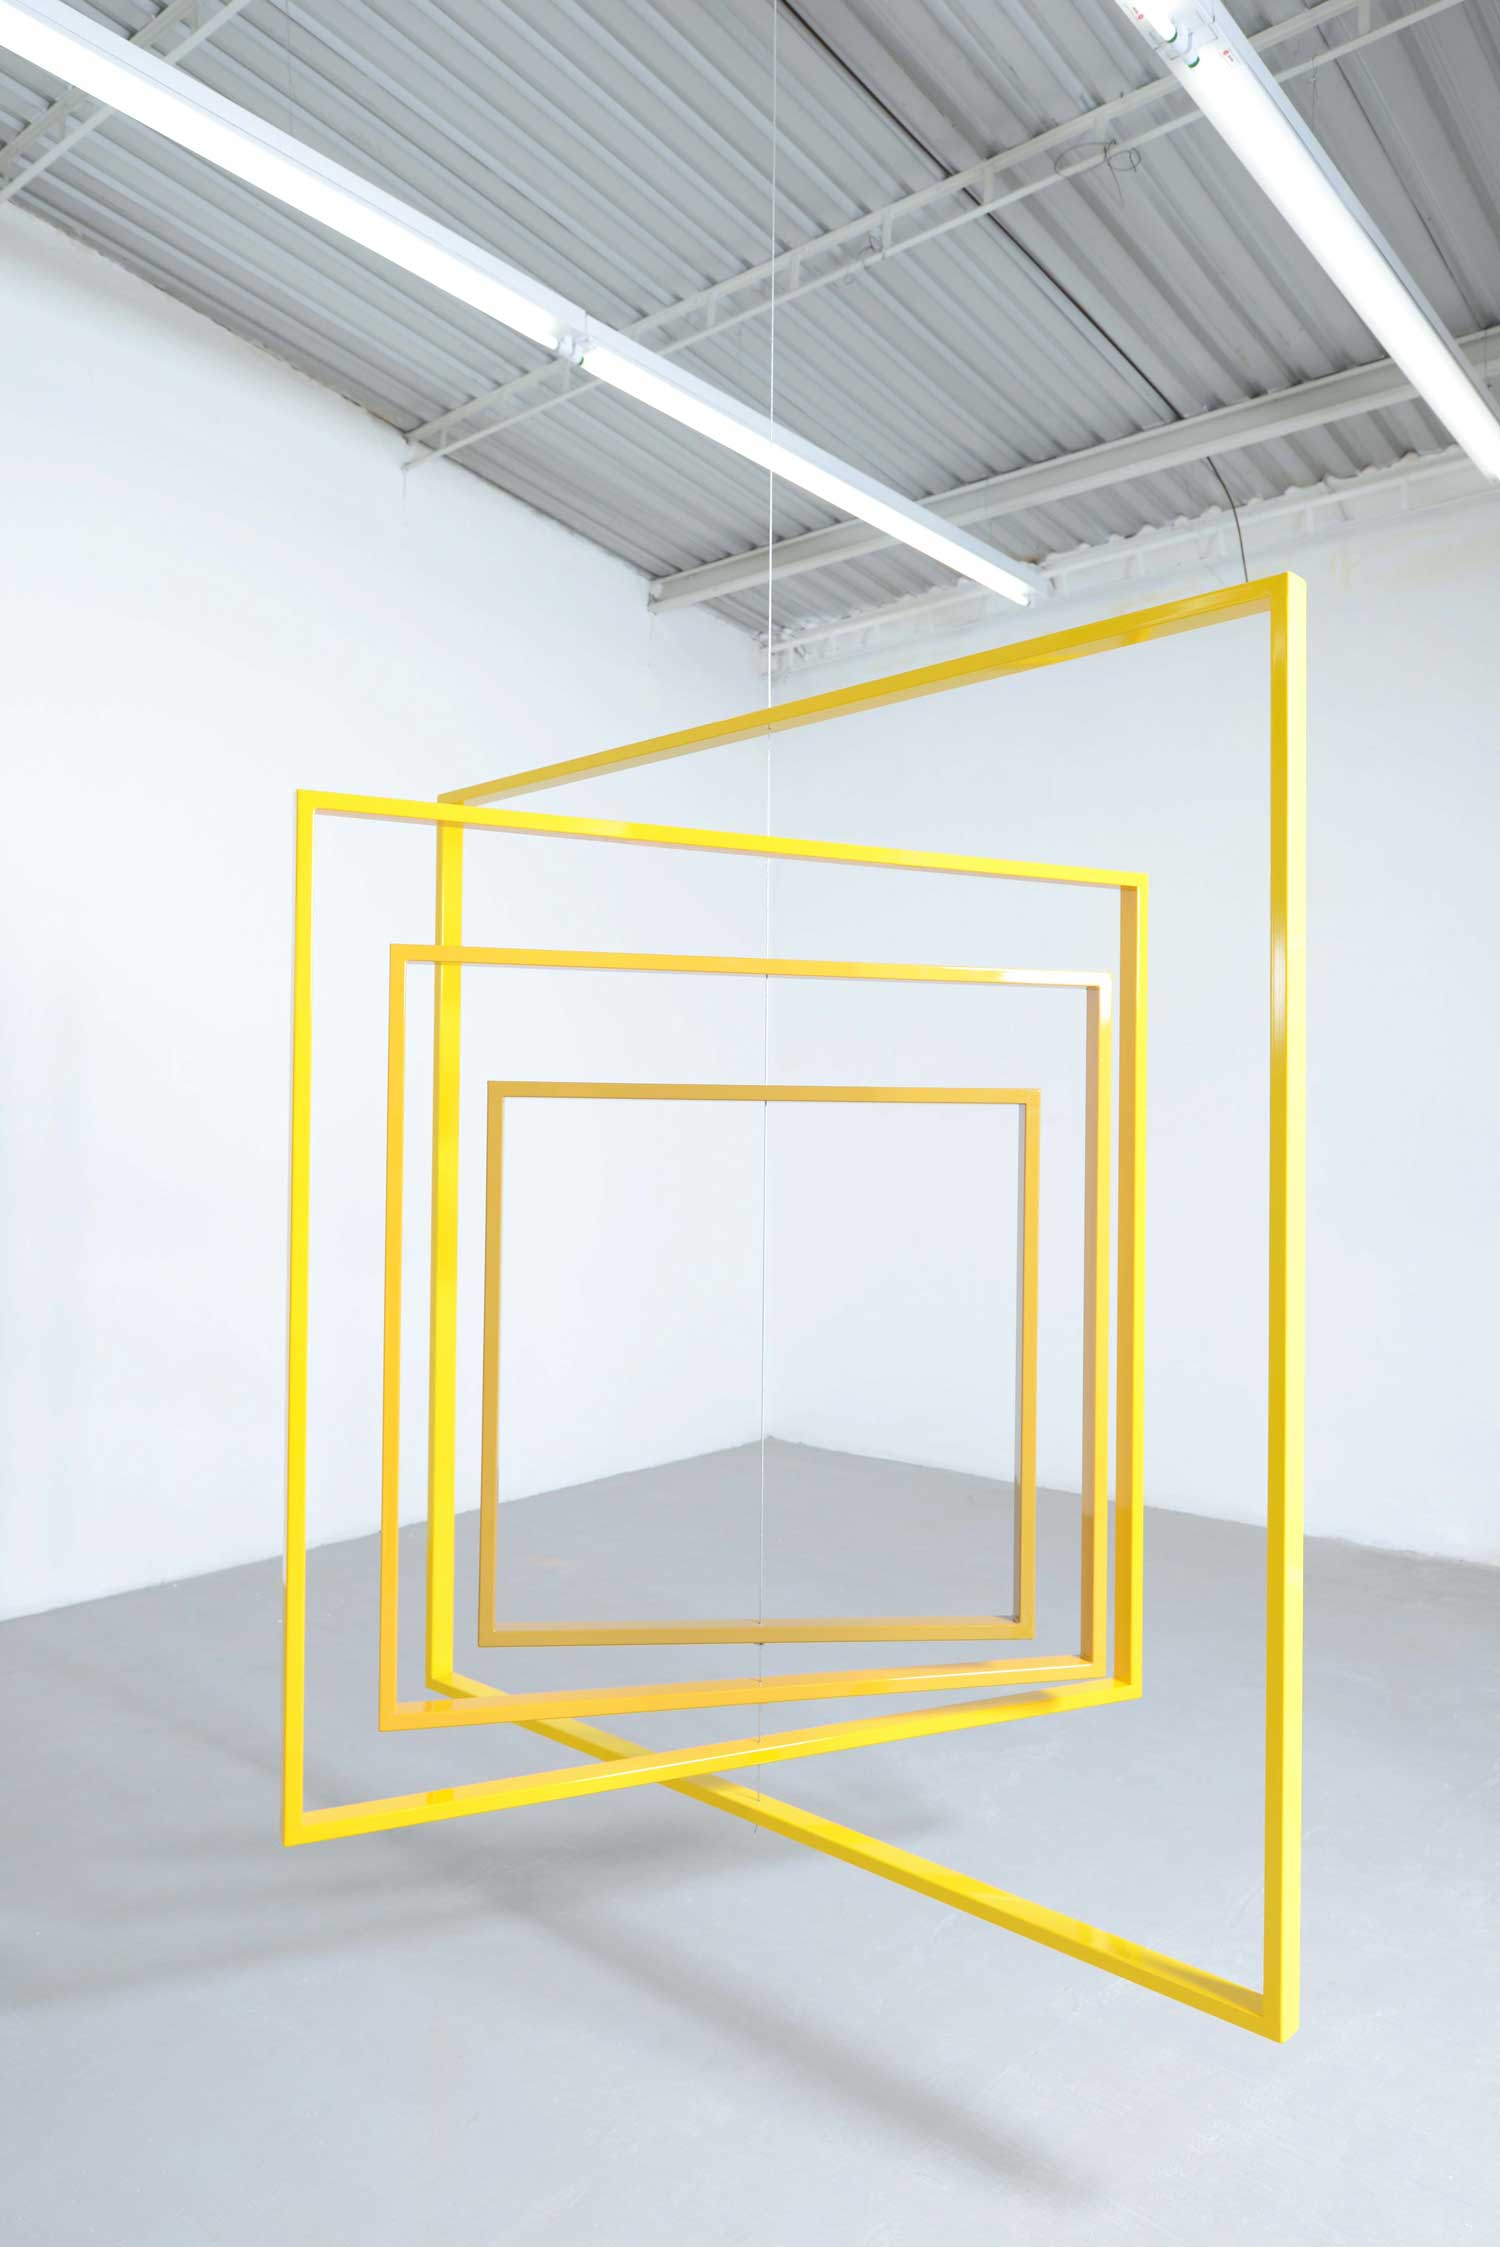 Jose Davila's Gravity-Defying Sculptures | Yellowtrace